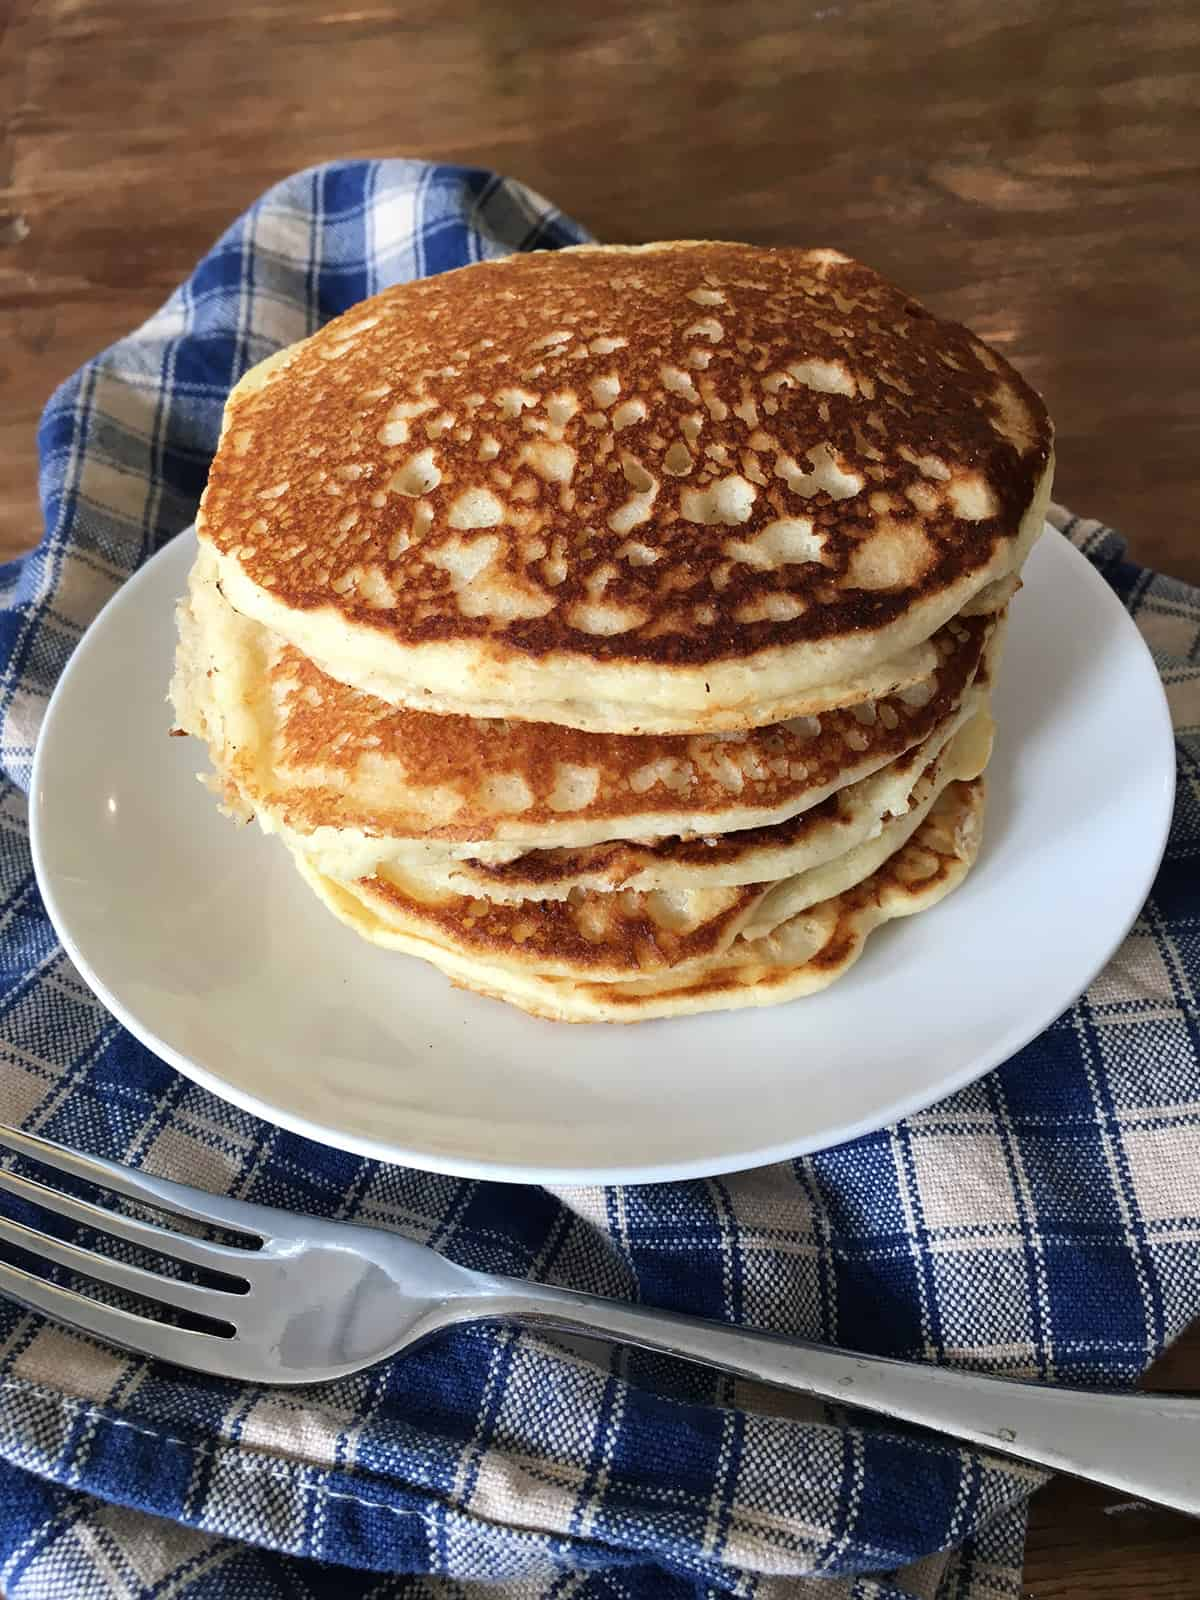 Stack of gluten free pancakes on a white plate with a blue and tan plaid napkin